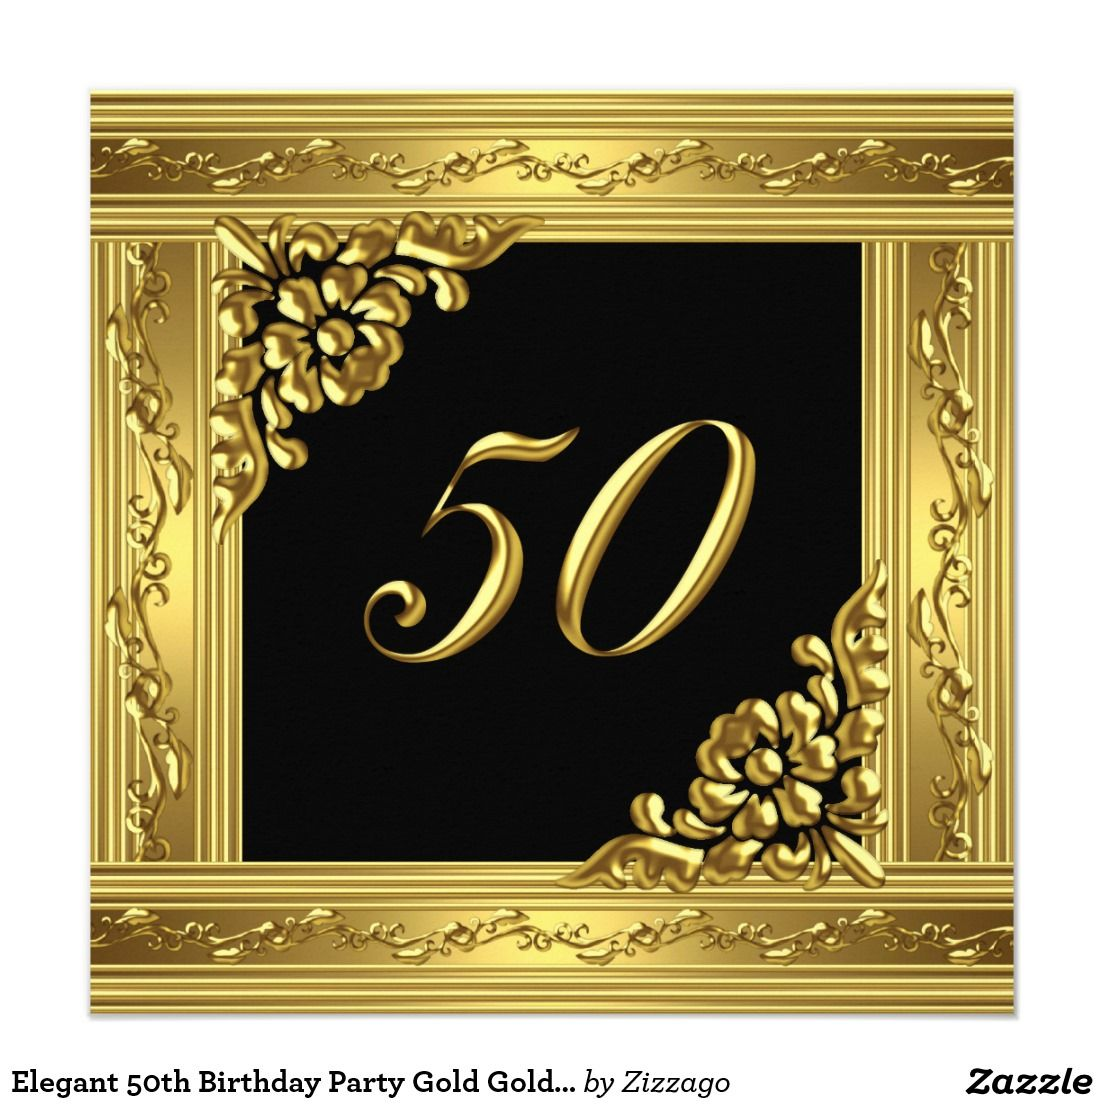 Elegant 50th Birthday Party Gold Golden 50 Black 5 25 Square Invitation Card